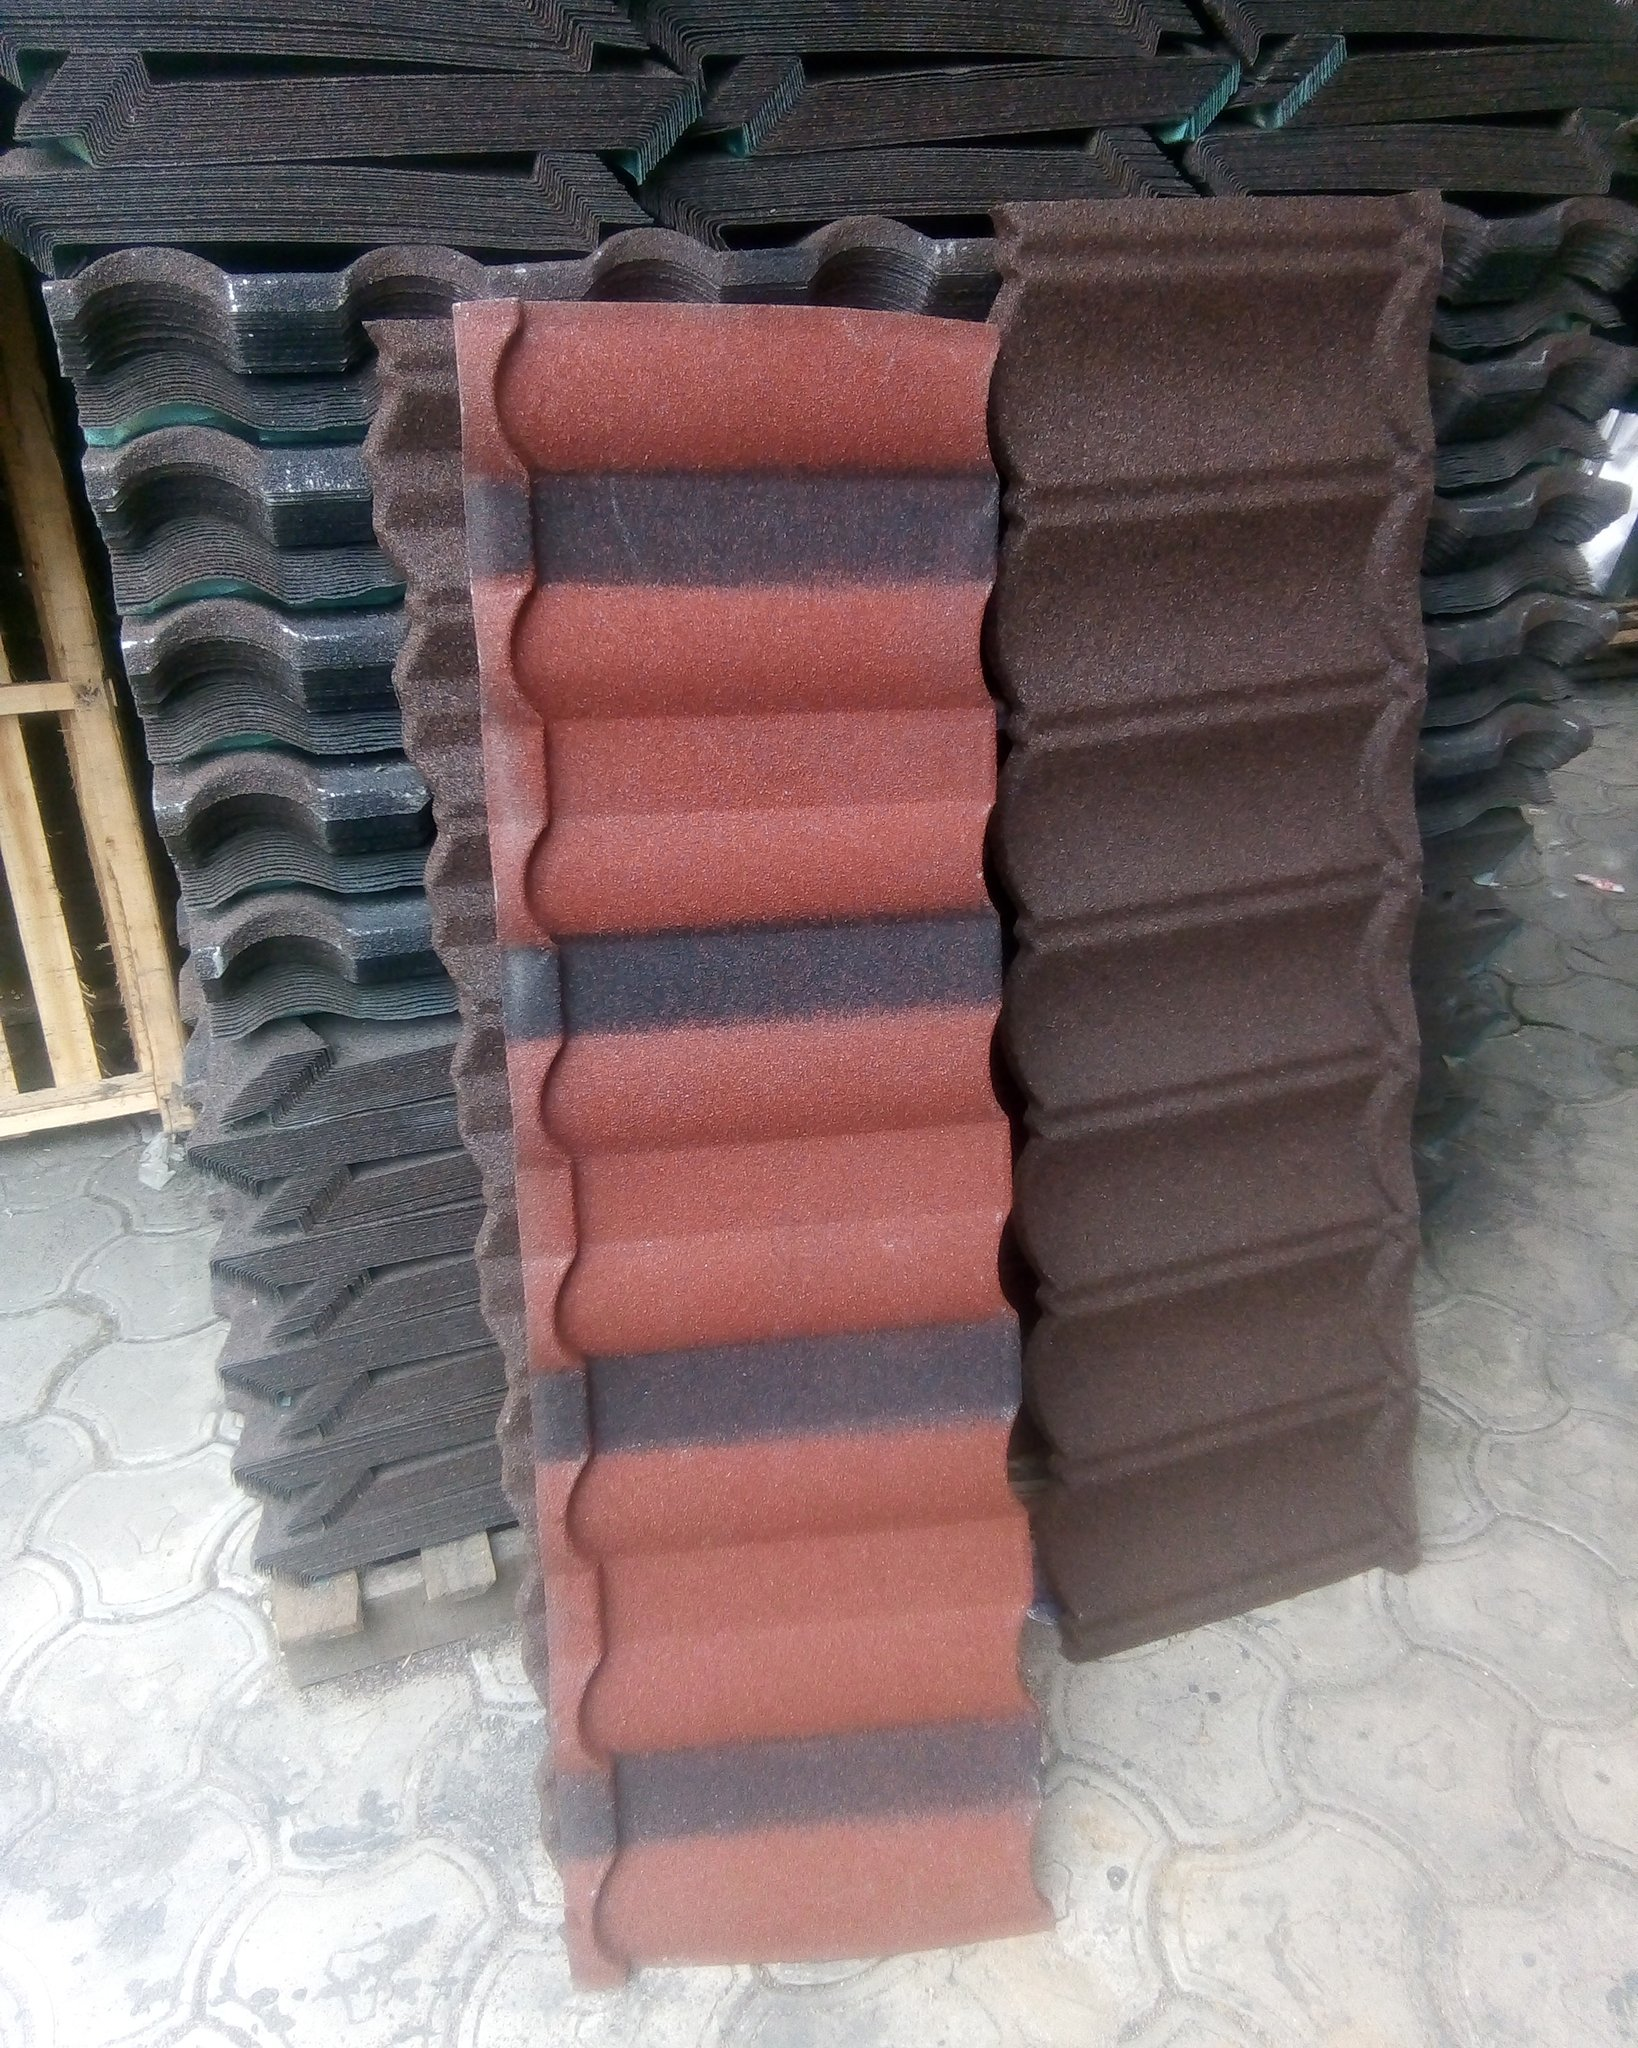 Rooftech Nigeria On Twitter Stone Coated Roof Tiles Is The New Black Top Quality Black Roof Tiles Metalroofing Rooftechnigeria Gafroofing Gaf Roof Roofs Roofer Roofers Roofing Shingles Shingleroofing Nyroofing Like4like Likeforlike